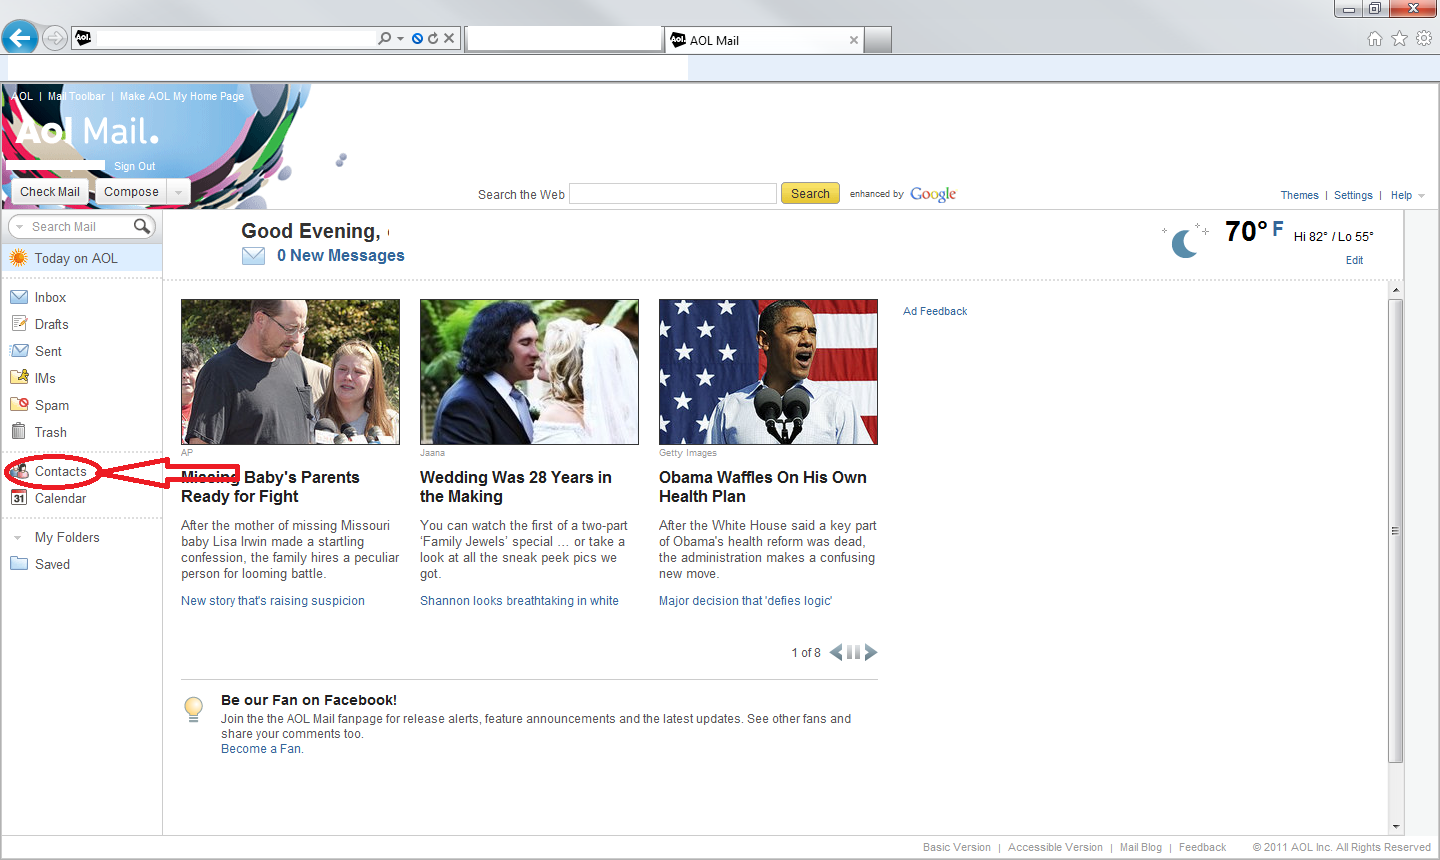 How to Search Email in AIM Mail or AOL Mail - Lifewire